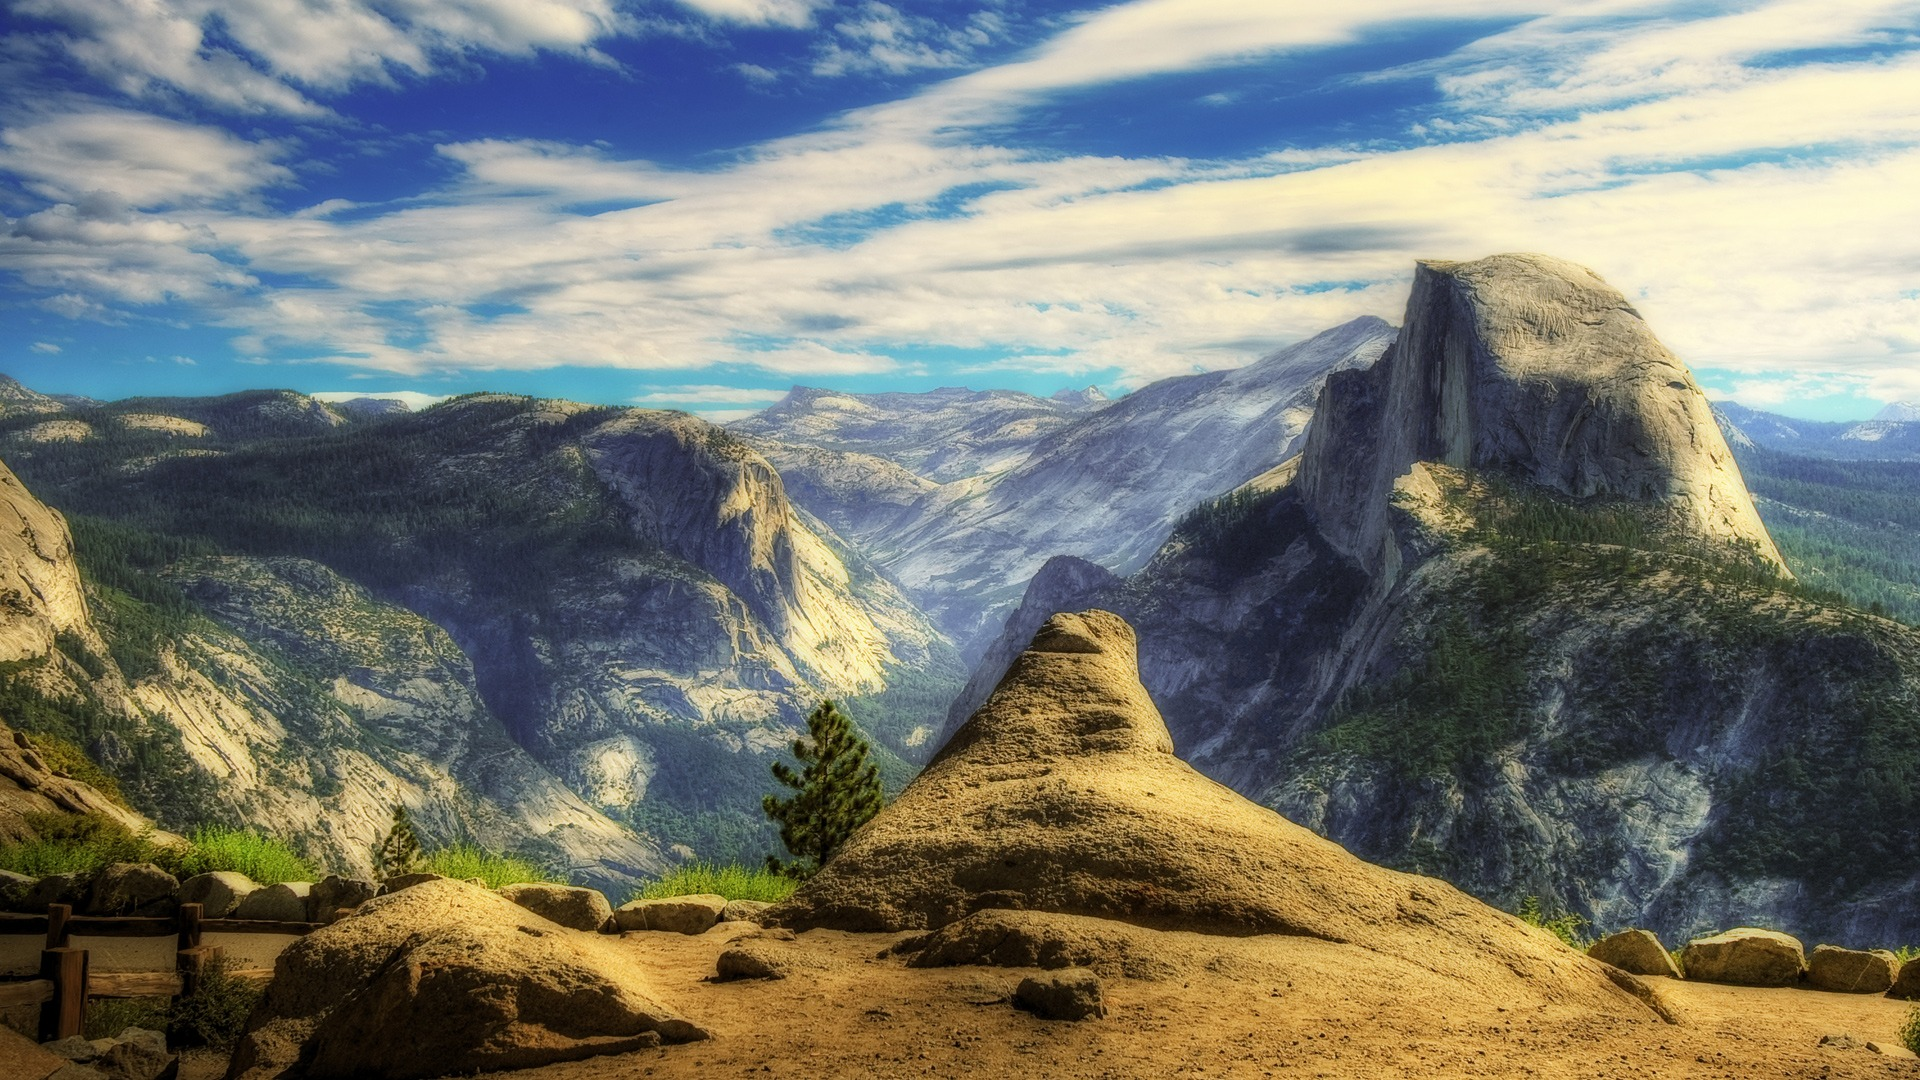 California Mountains Wallpaper United States World Wallpapers In Jpg